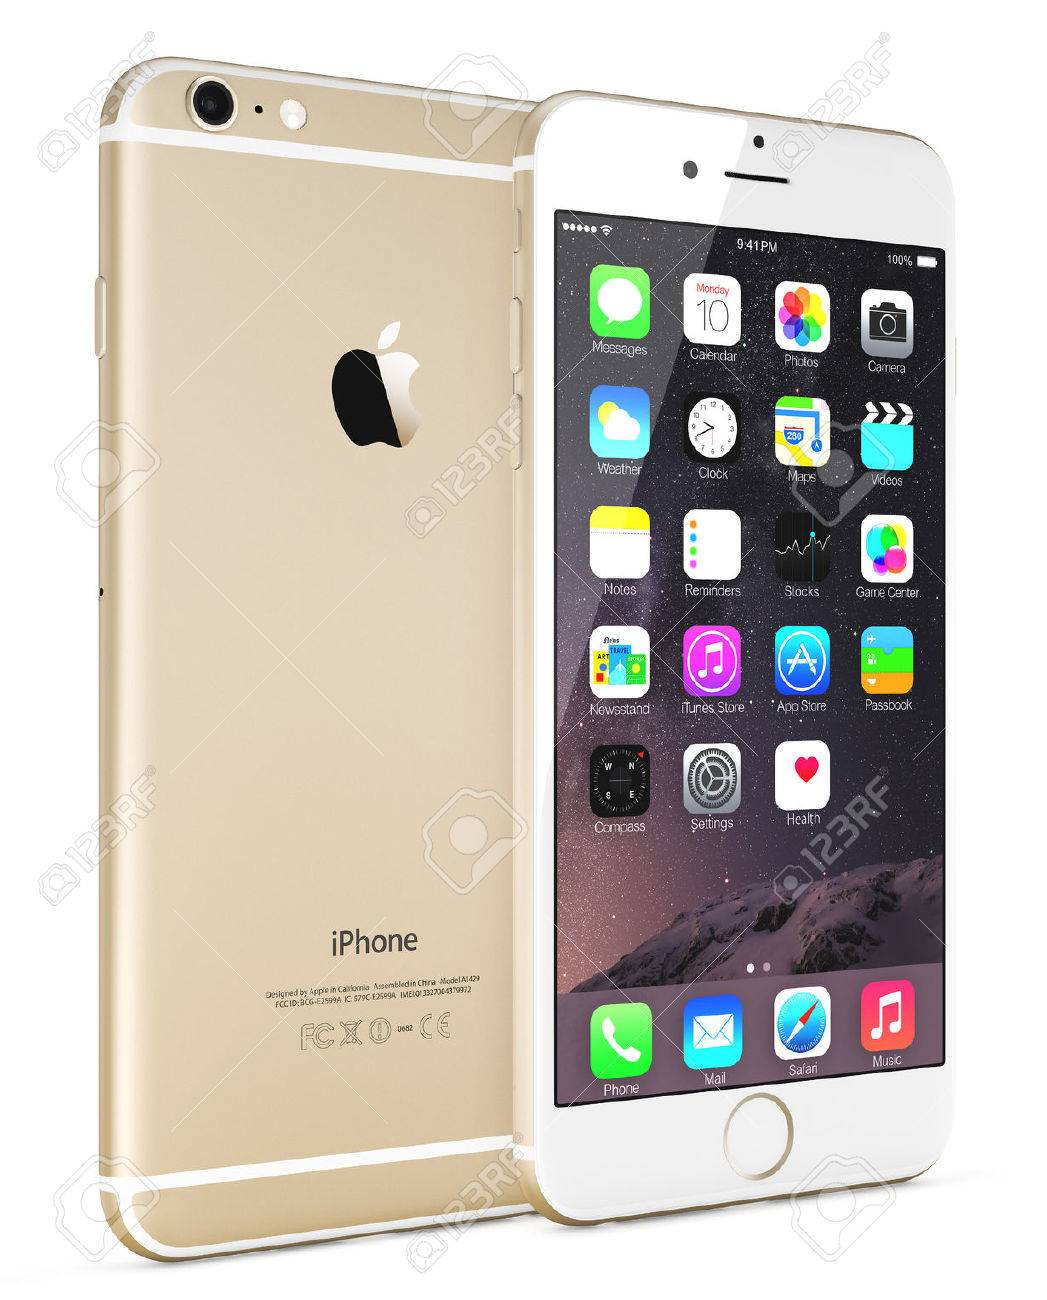 Galati, Romania - September 18, 2014: Apple Gold iPhone 6 Plus showing the home screen with iOS 8.The new iPhone with higher-resolution 4.7 and 5.5-inch screens, improved cameras, new sensors, a dedicated NFC chip for mobile payments. Apple released the i - 32031103